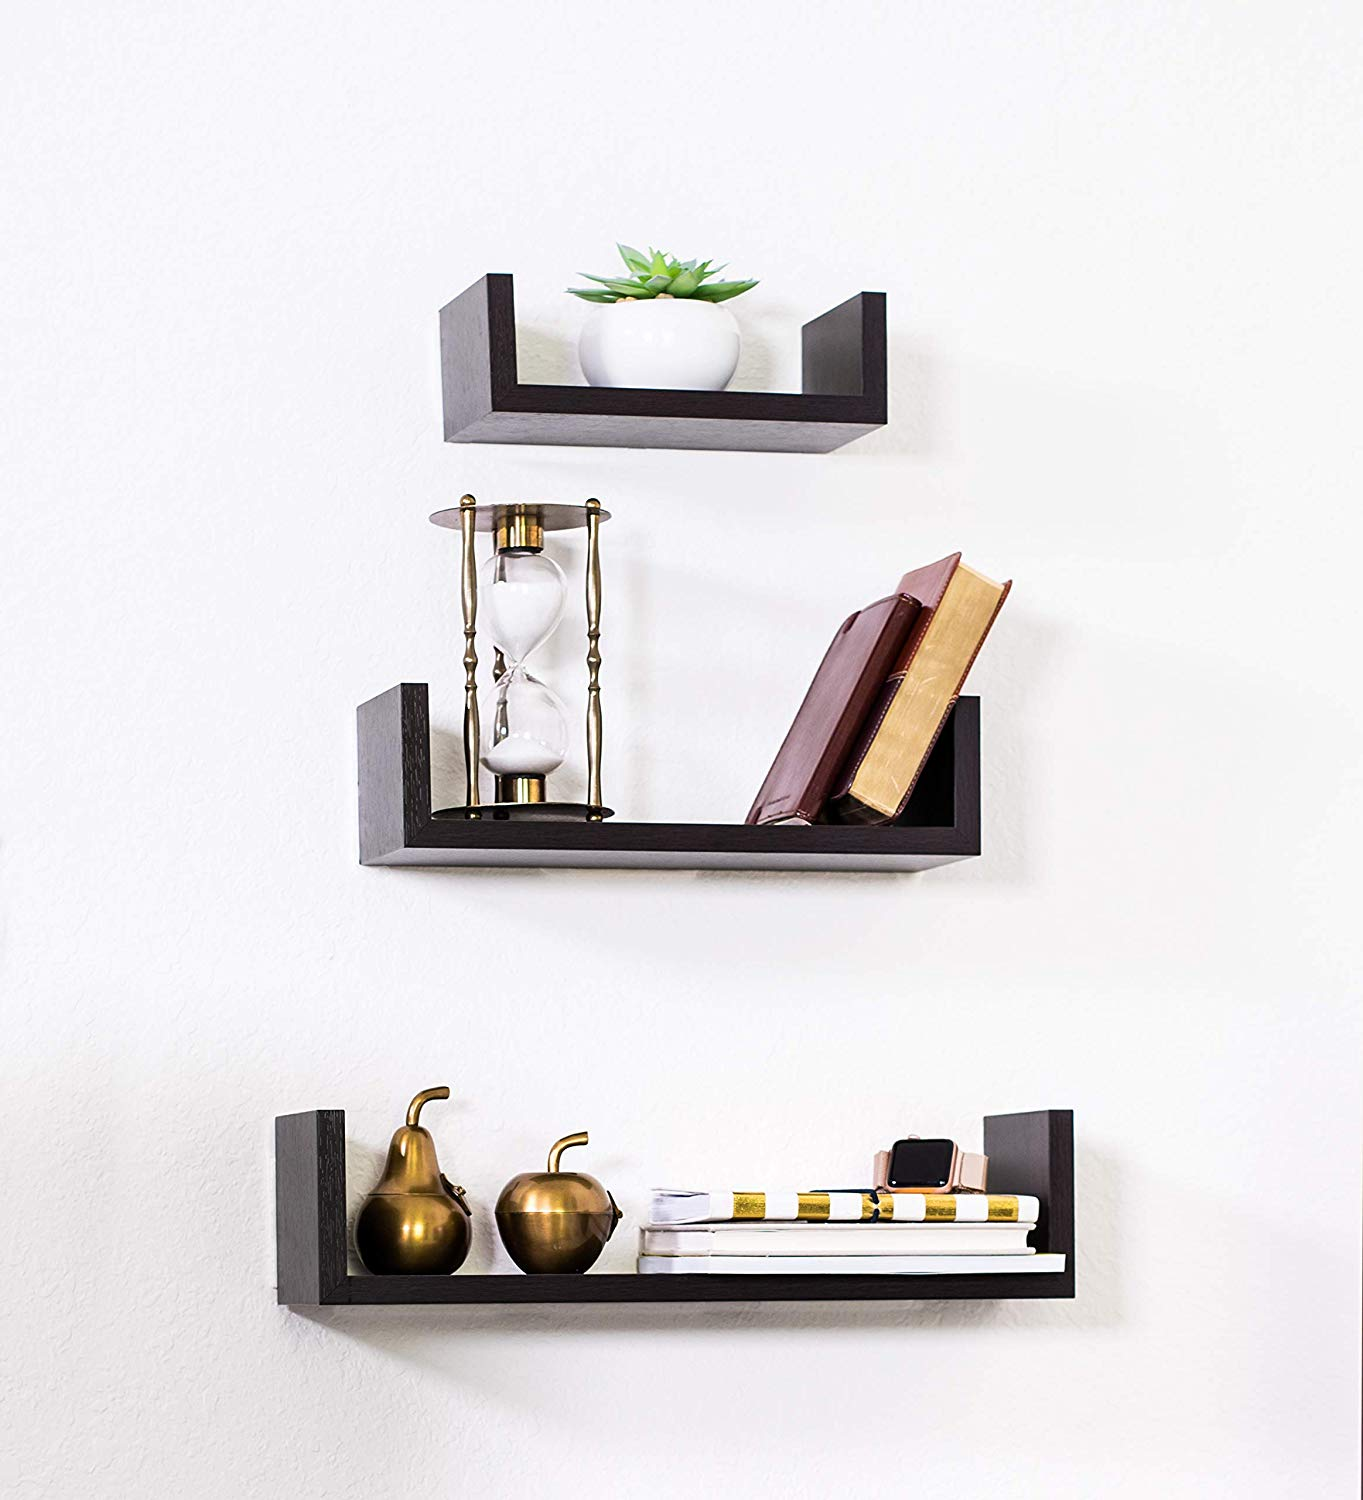 adorn home essentials floating shelves set with espresso modern shape and durable design simple hanging kit included kitchen diy shoe shelf plans brackets perth vinyl tile